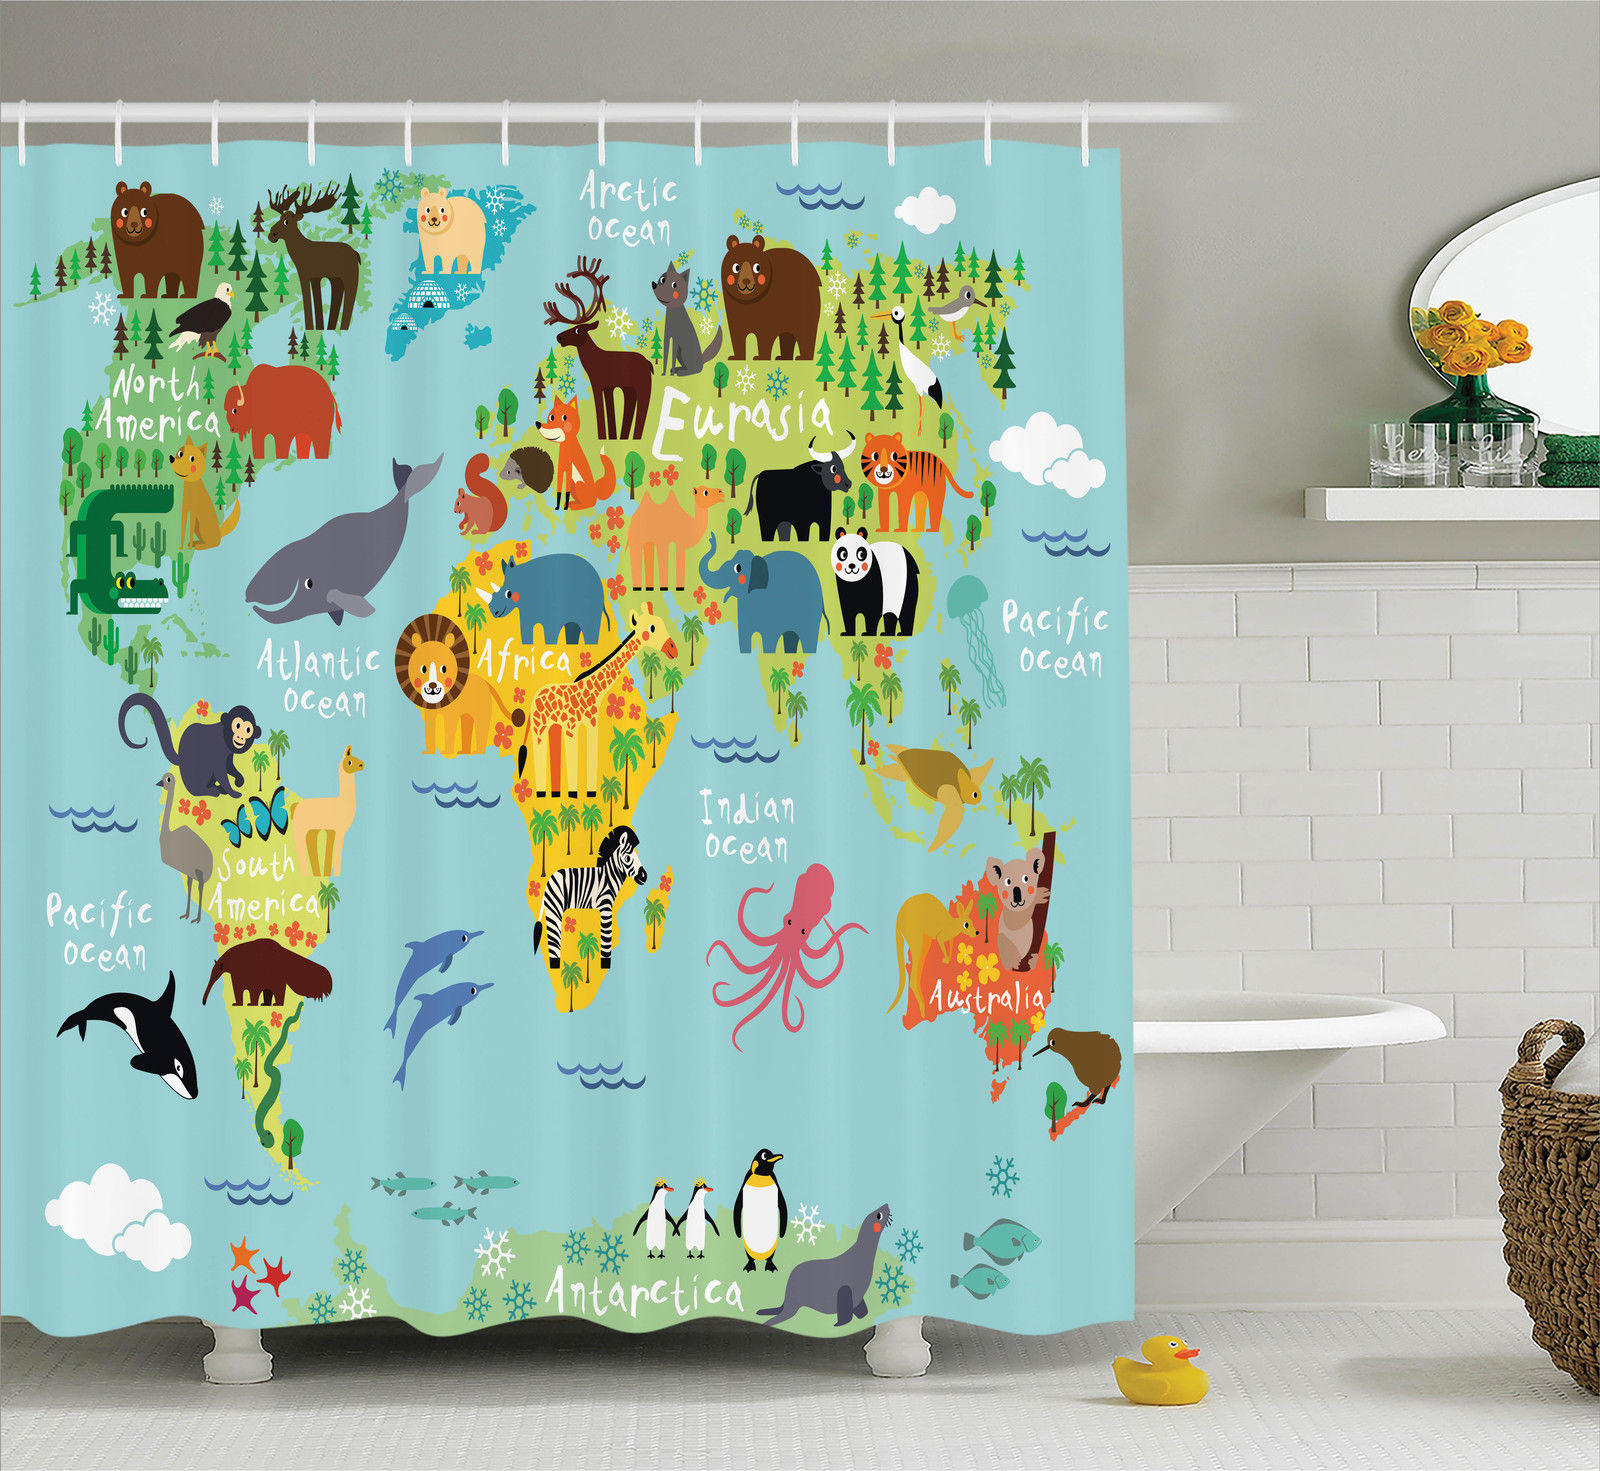 Wanderlust Decor  Animal Map Of The World For Children And Kids Cartoon Mountains Forests, Bathroom Accessories, 69W X 84L Inches Extra Long, By Ambesonne